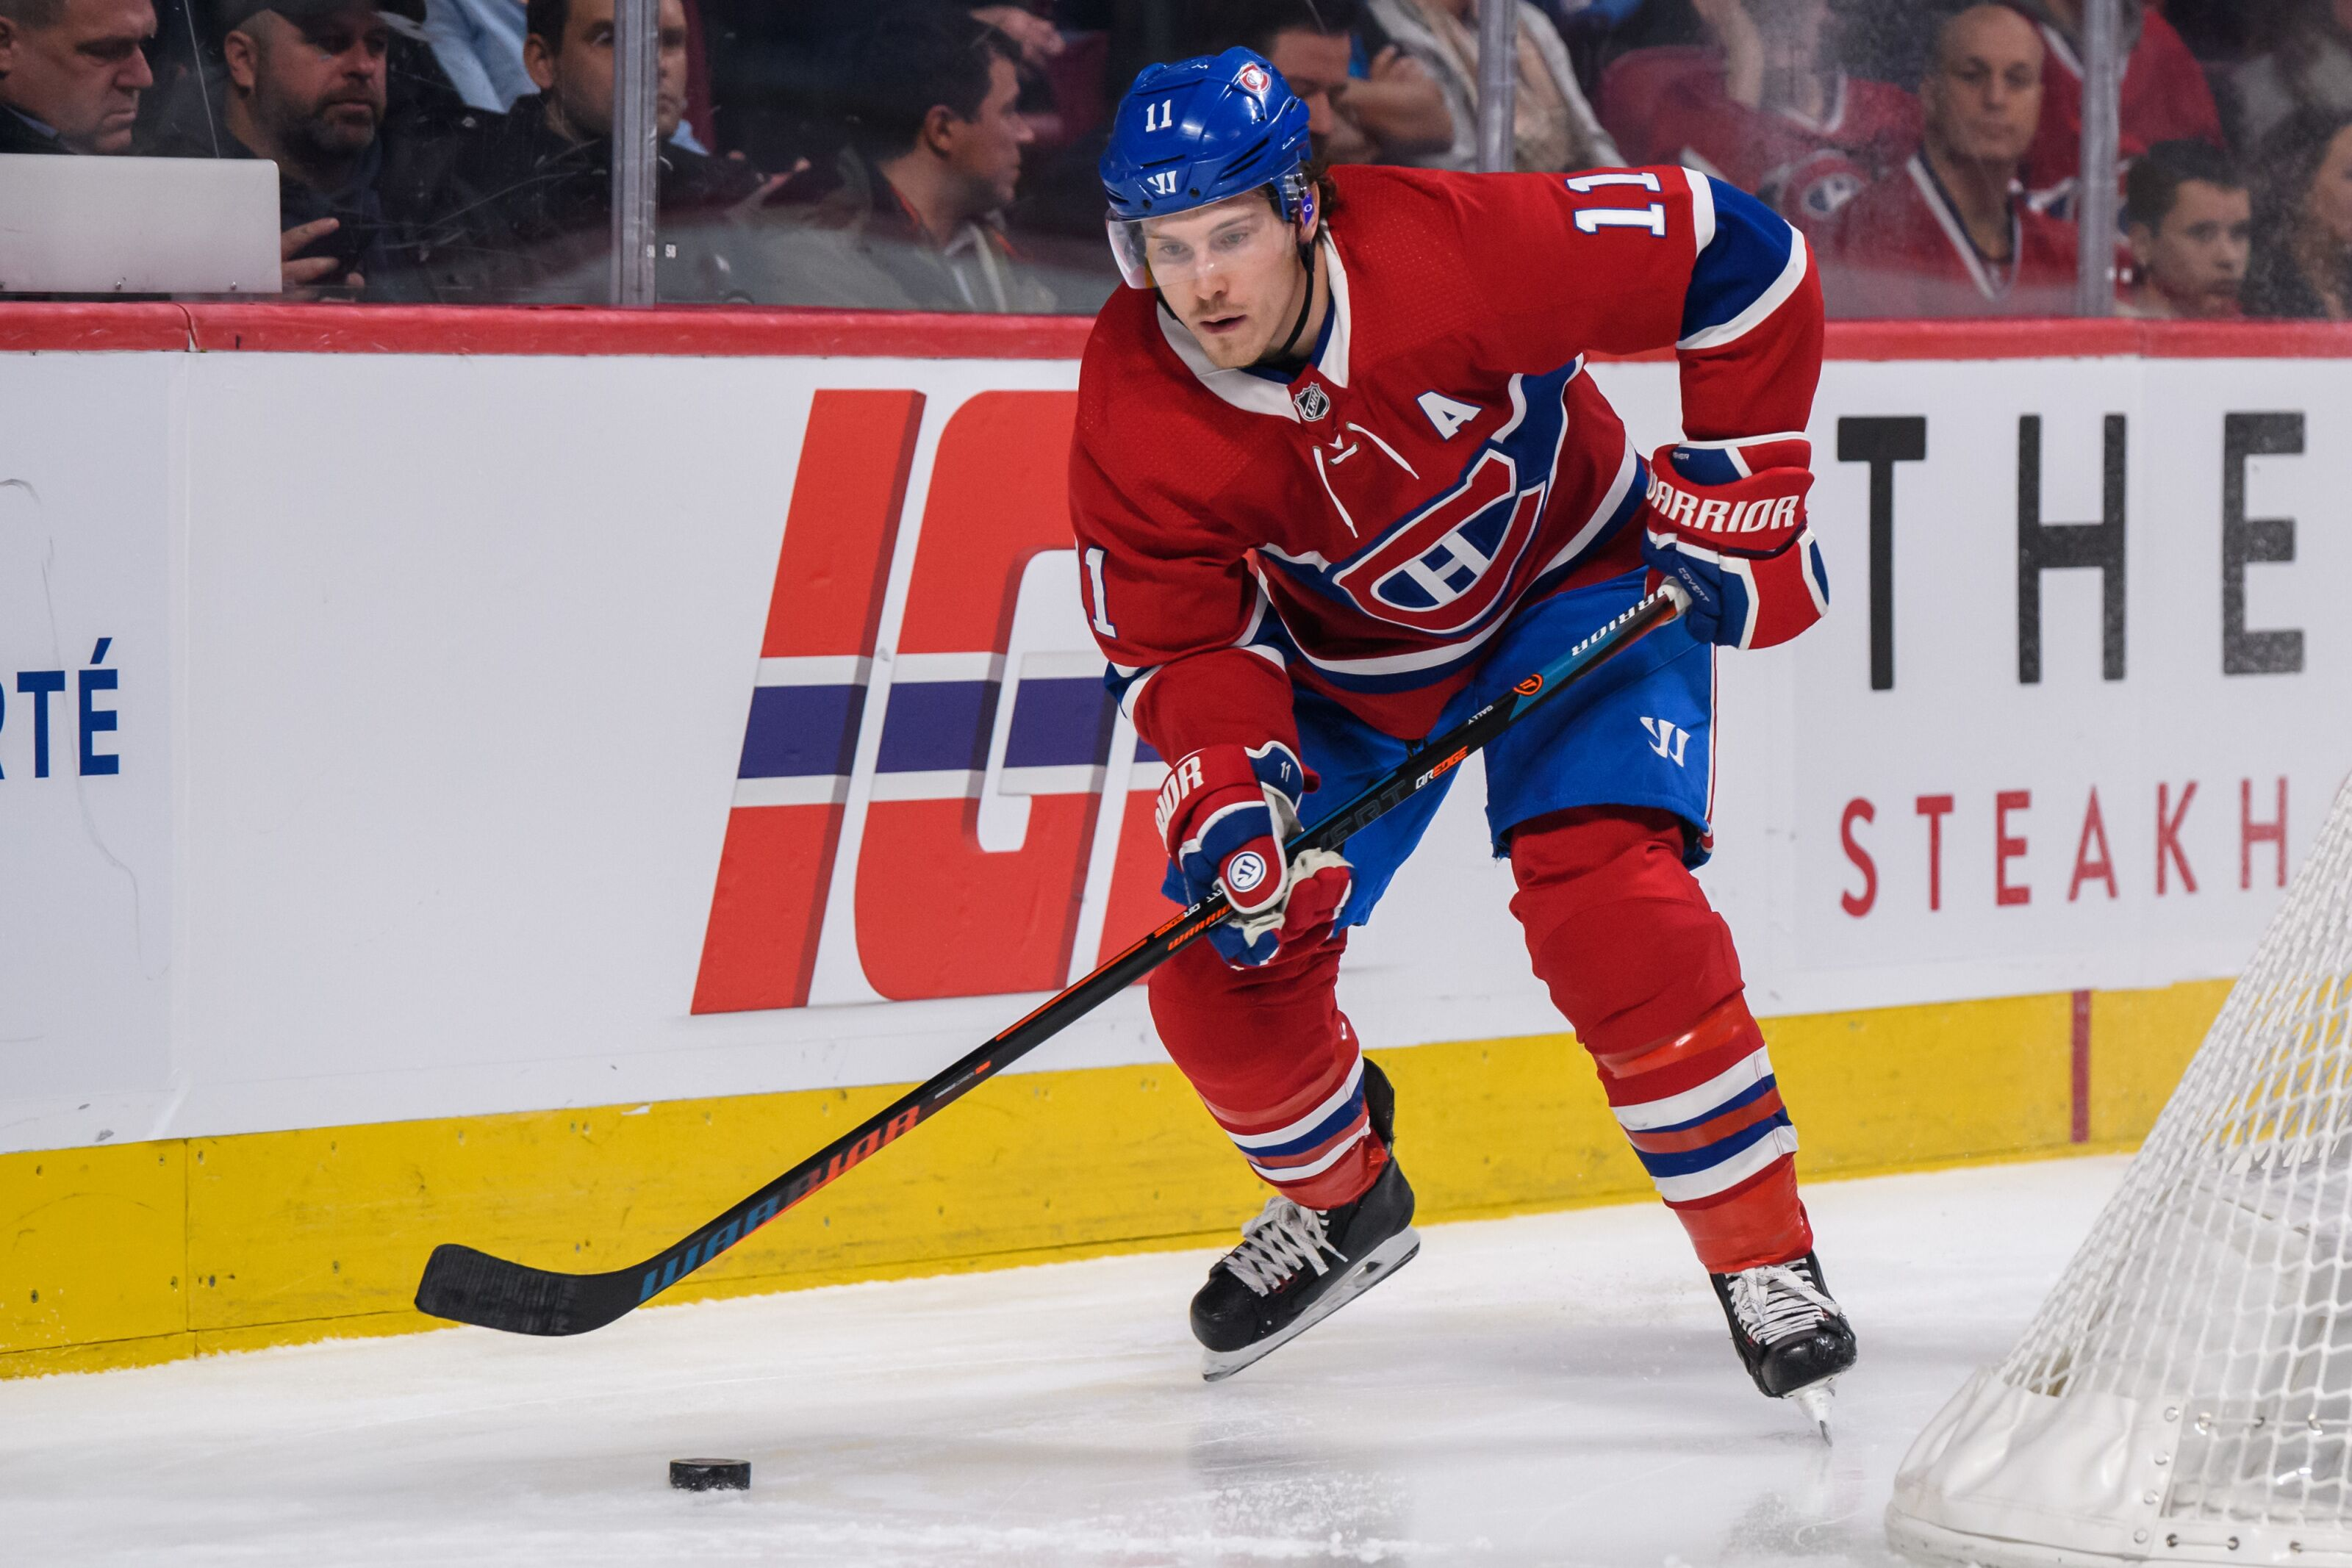 Montreal Canadiens: Brendan Gallagher Quietly On Pace For Career Year